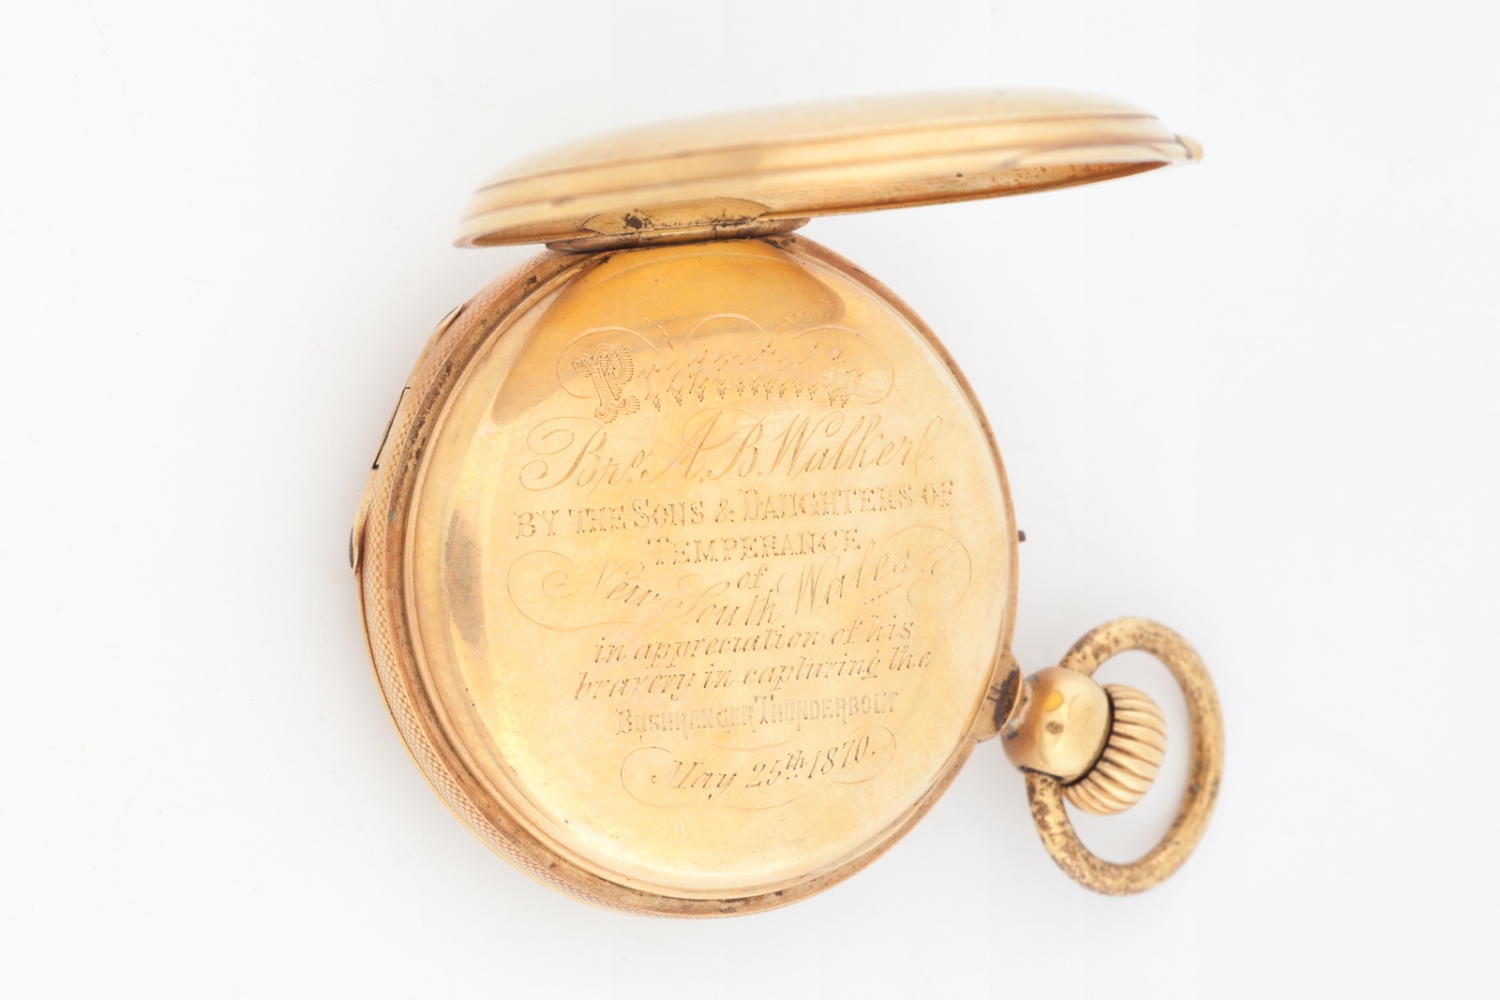 Pocket watch presented to Constable Alexander Walker by the Sons and Daughters of Temperance, 1870